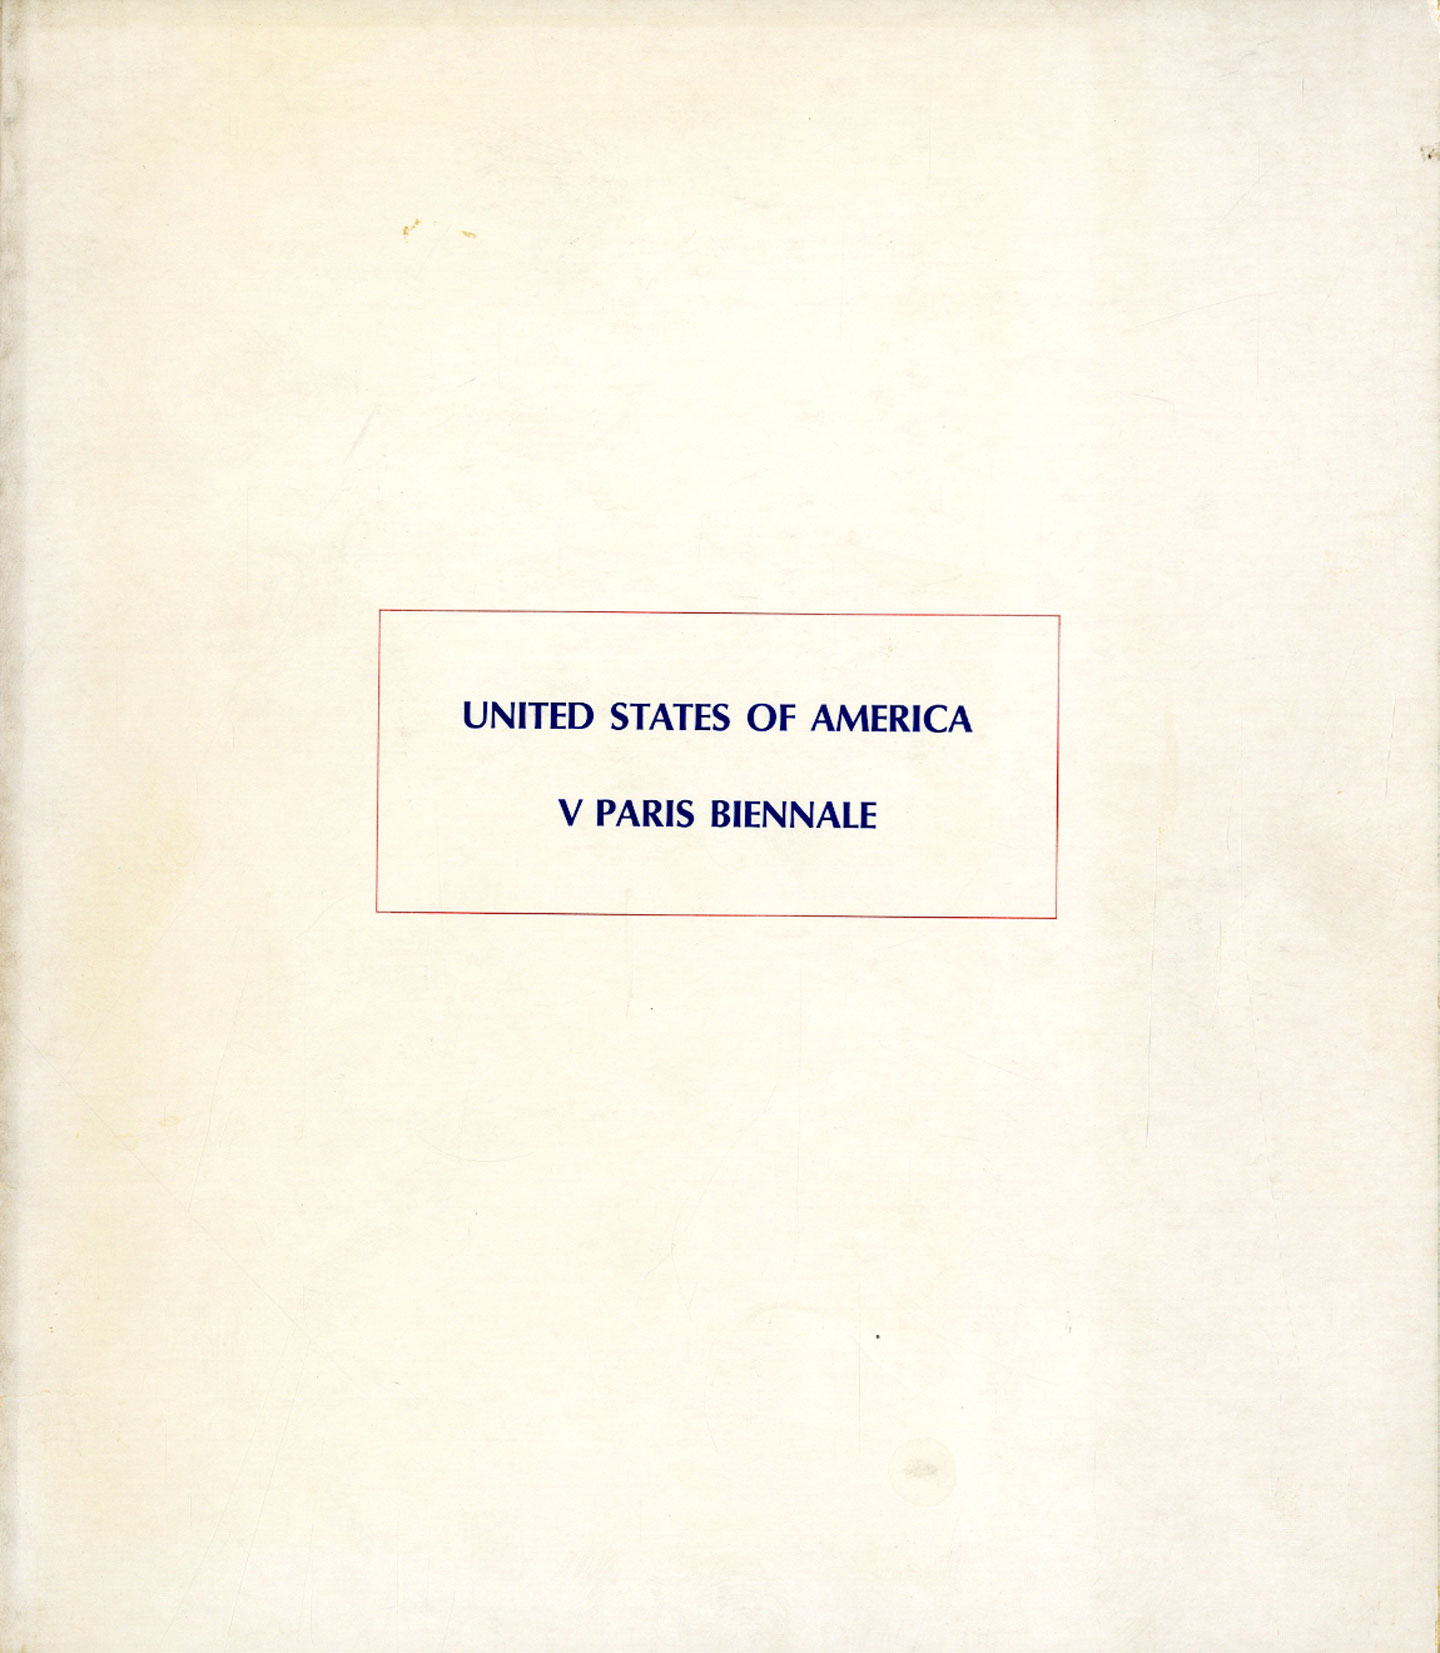 United States of America: V Paris Biennale (1967 Exhibition Catalogue)